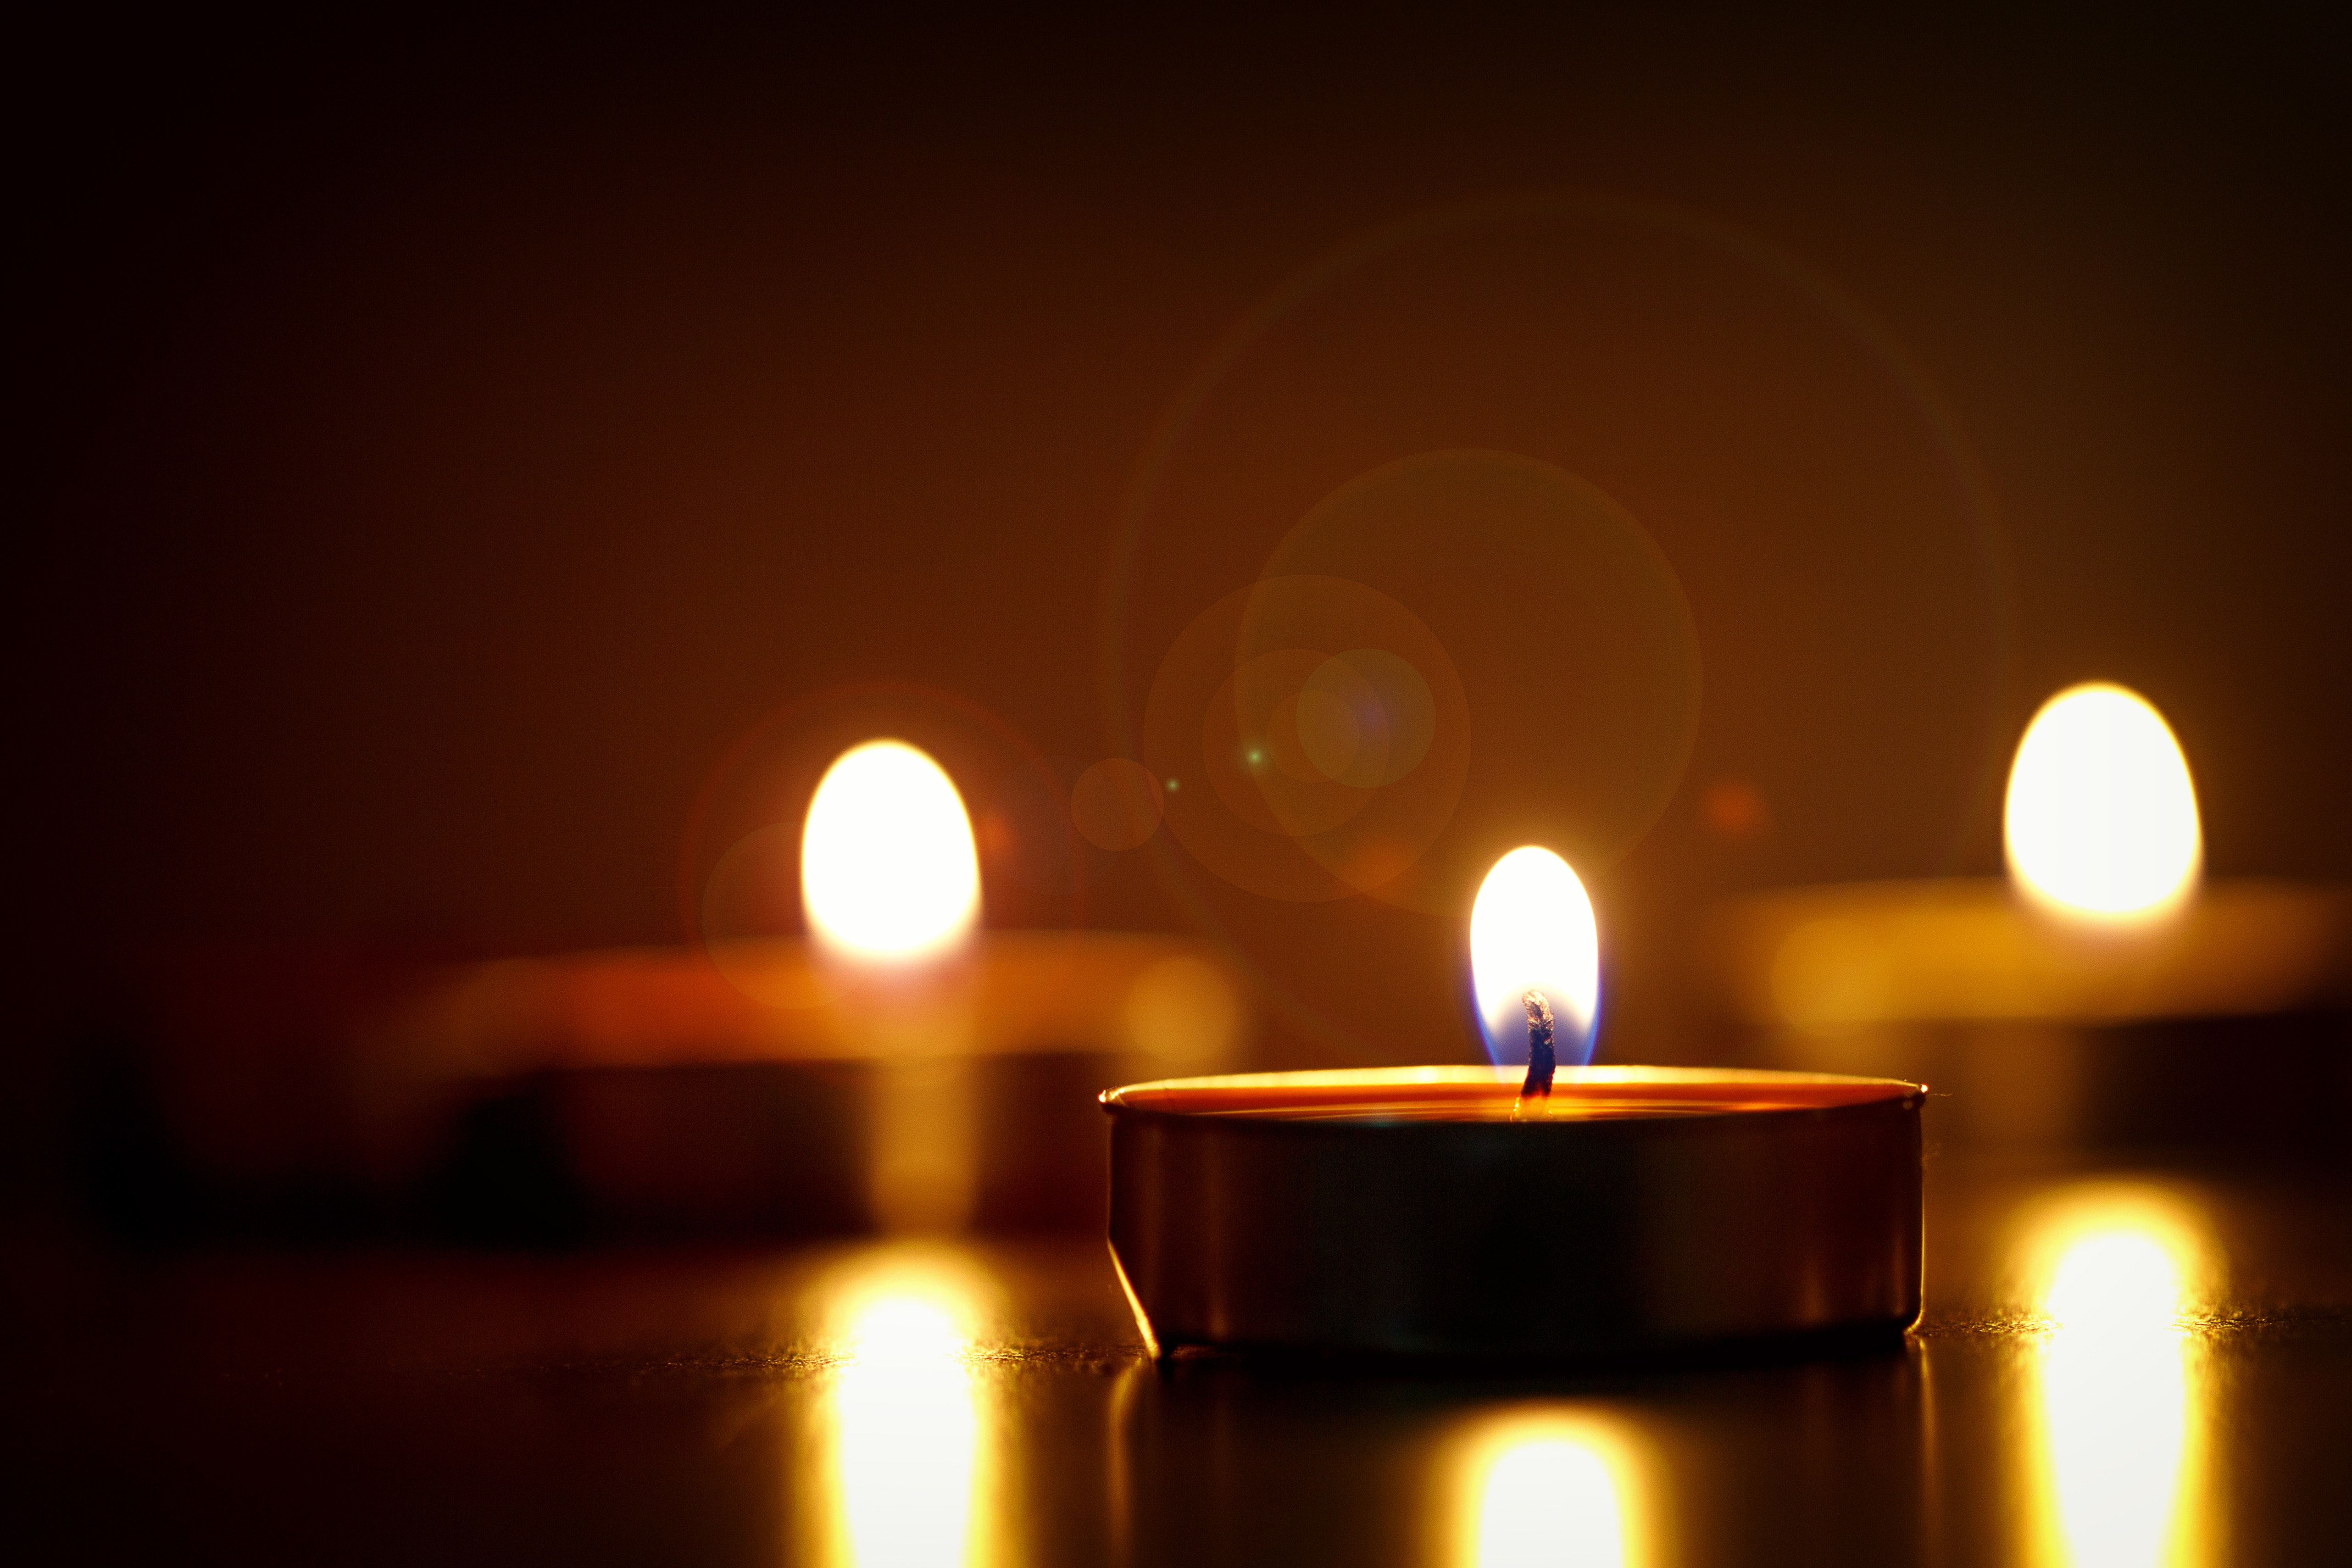 blur-bright-candlelights-722653.jpg